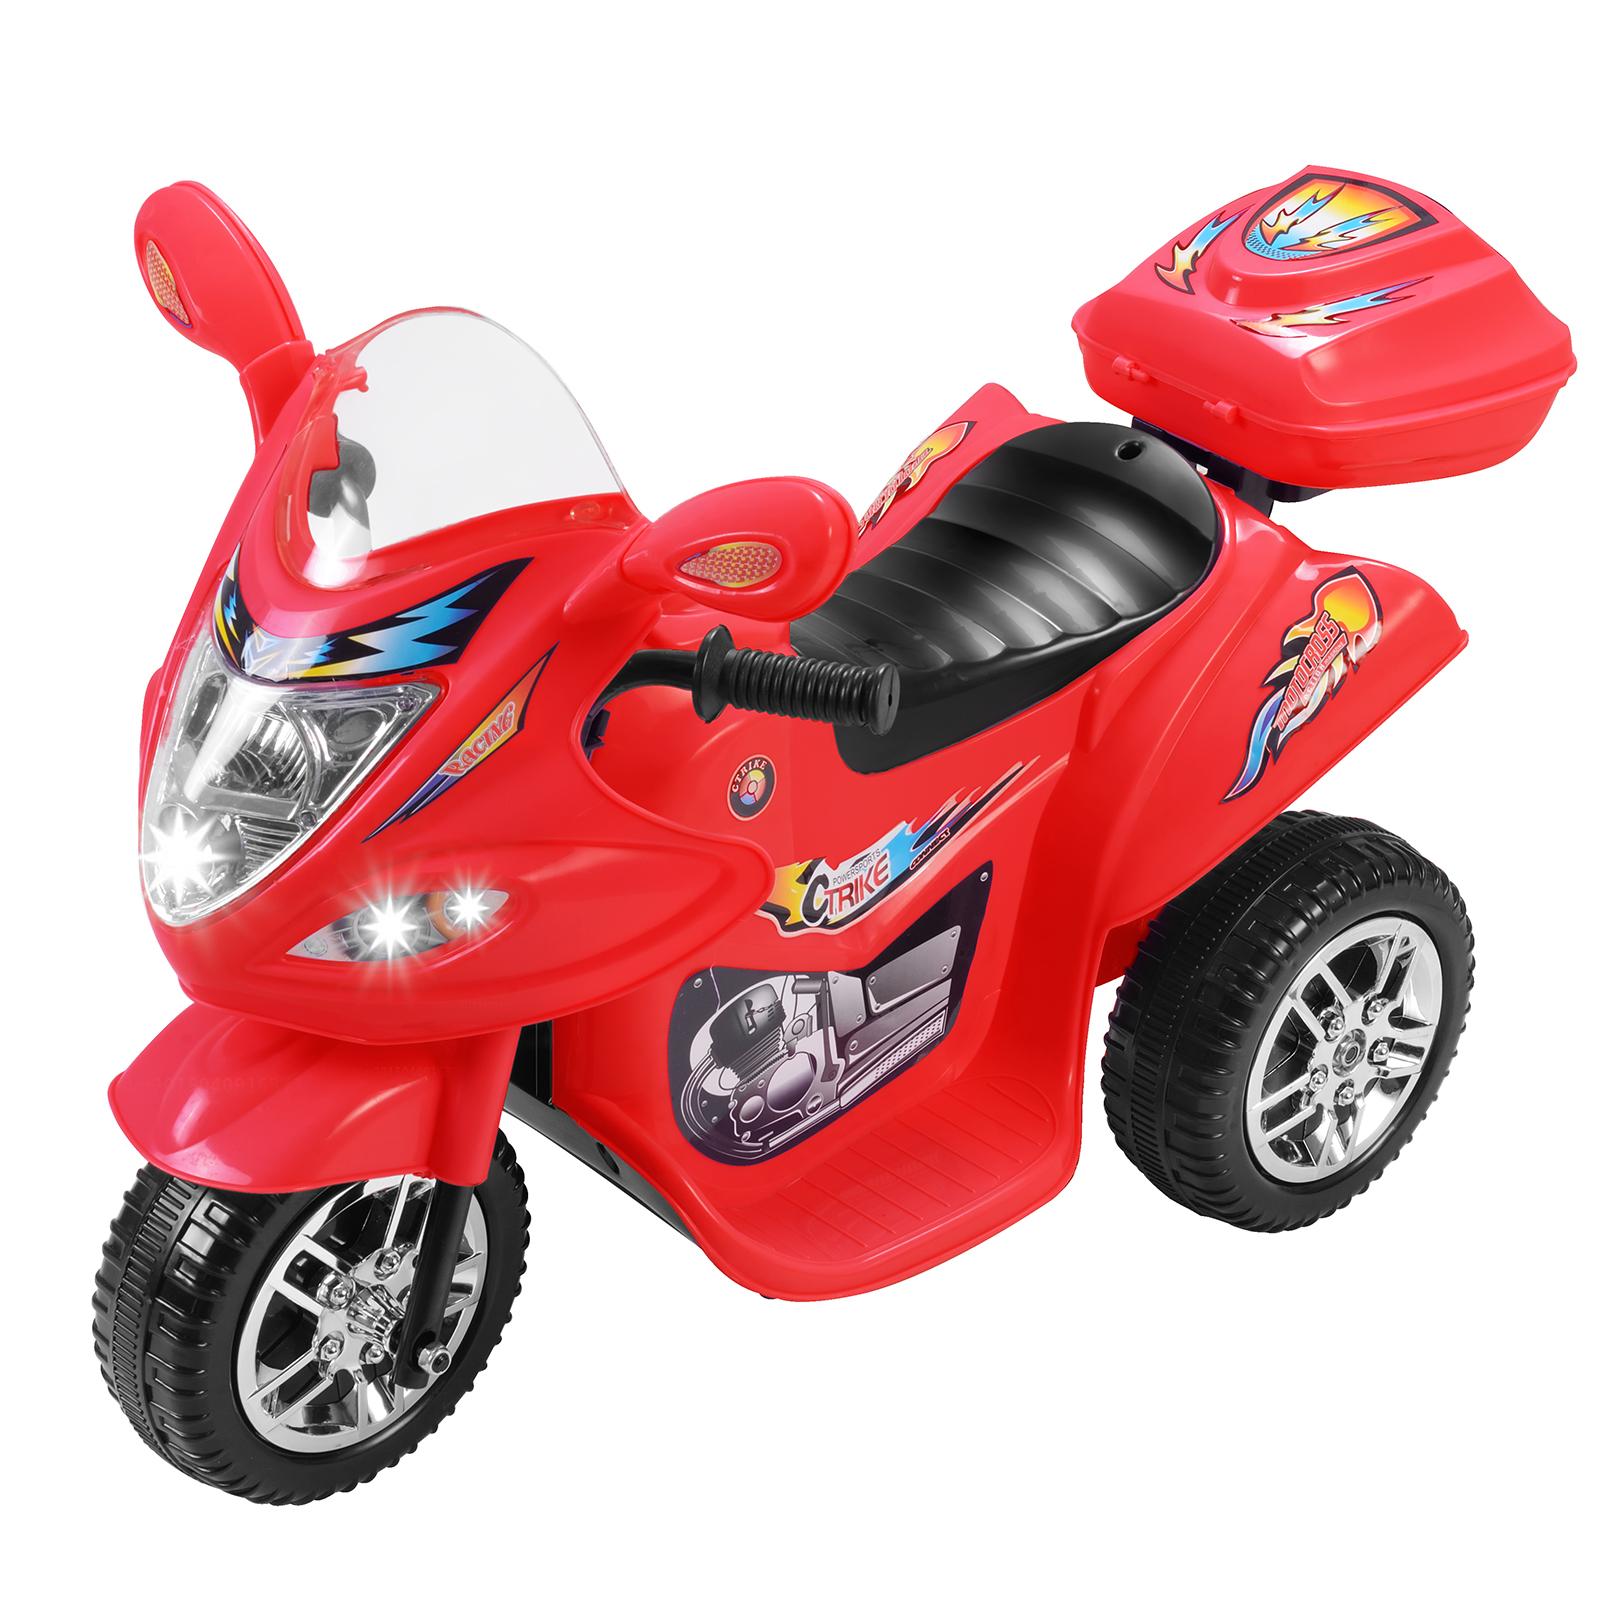 Uenjoy Kids Ride on Motorcycle 6V Electric Motorcycle 2 Wheels Red by Uenjoy